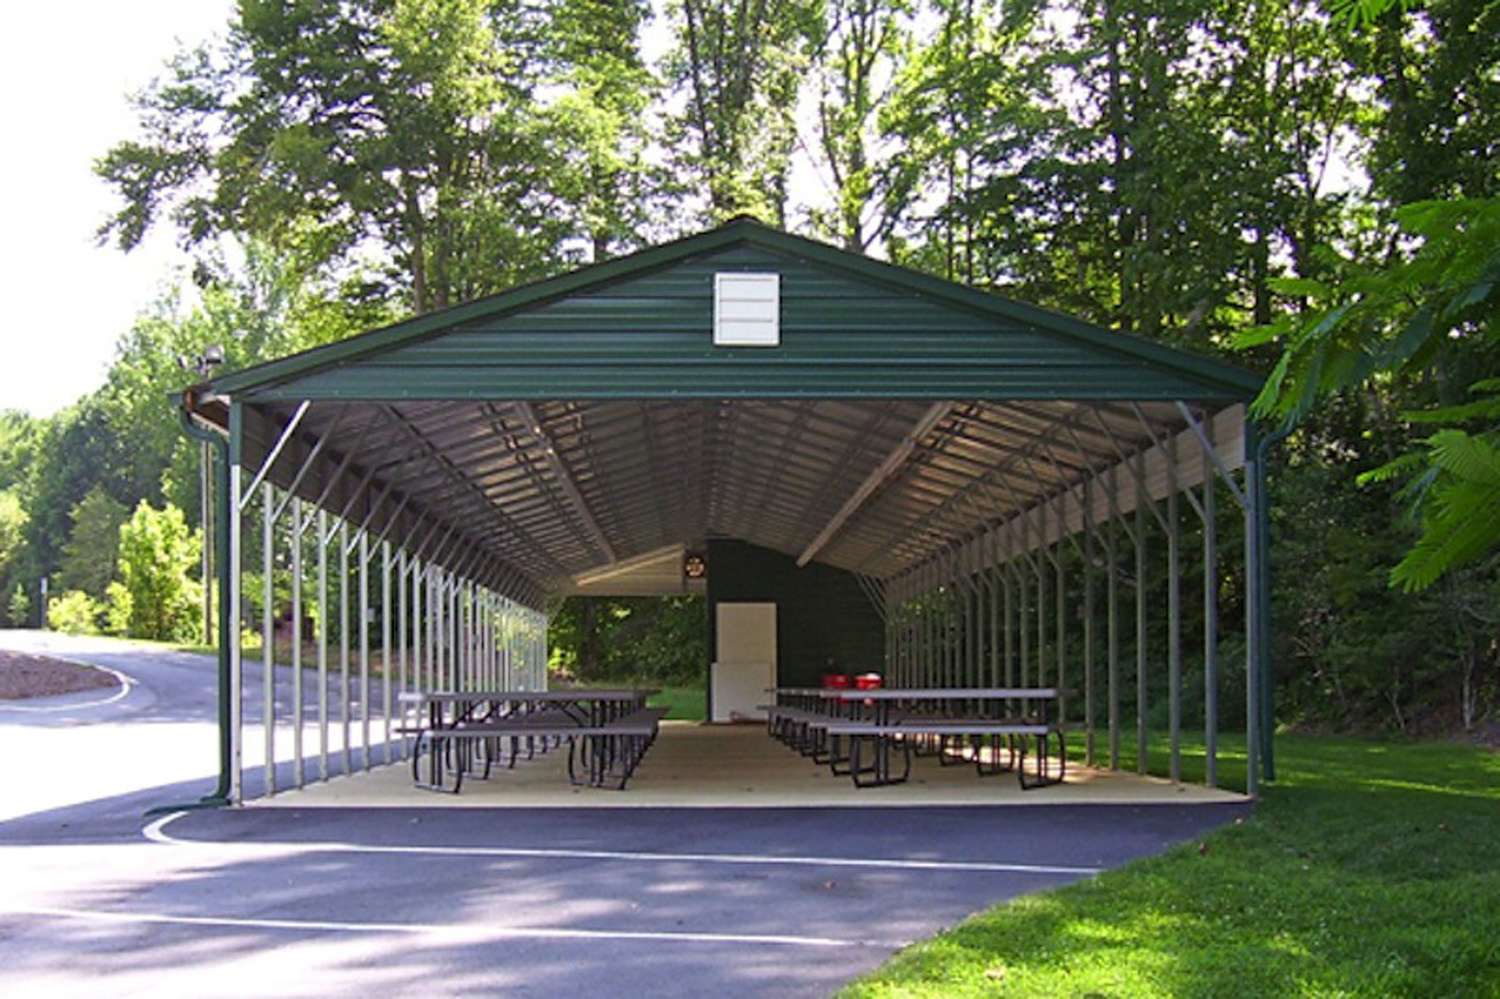 Green Vertical Roof Picnic Area Carport